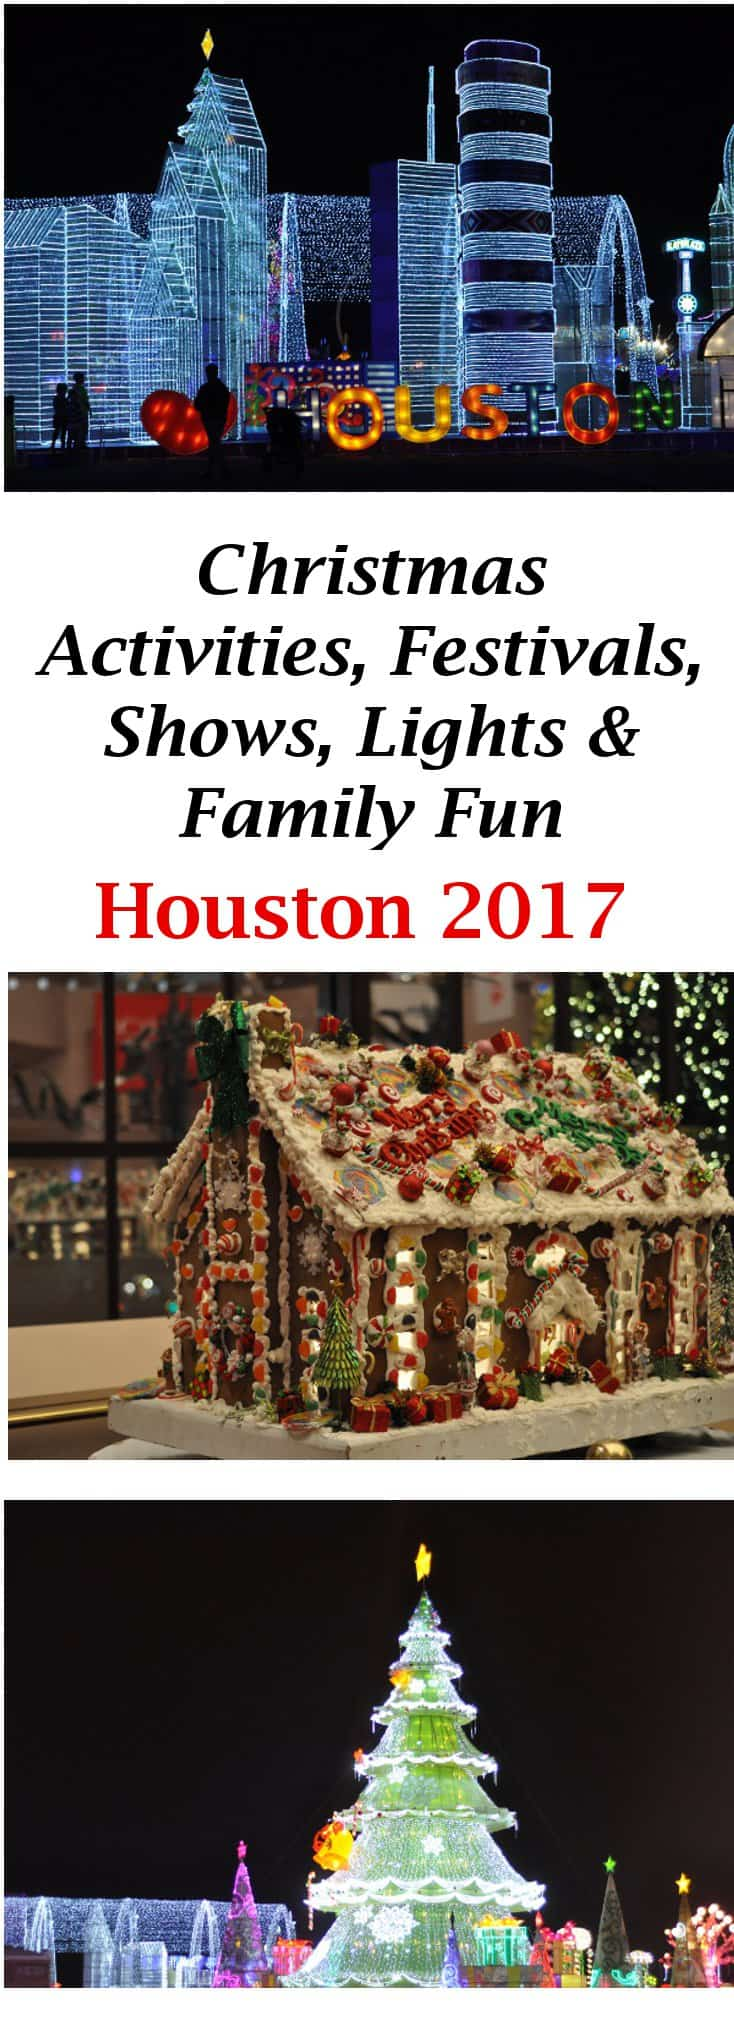 activities comfortable lodging options and plenty of amenities for the whole family on new years eve well be hosting an exclusive celebration for